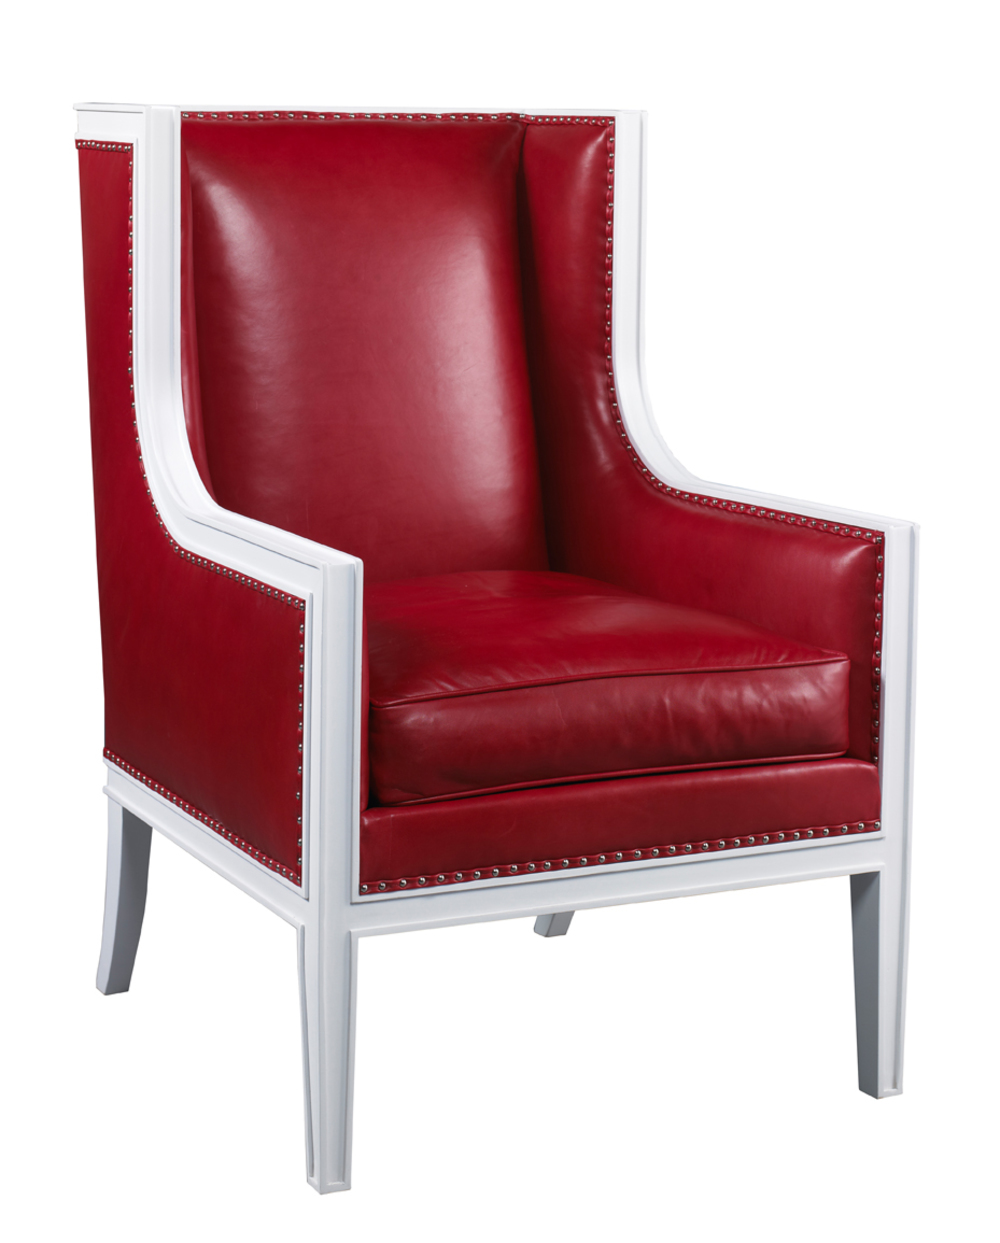 Lillian August Fine Furniture - Jana Chair